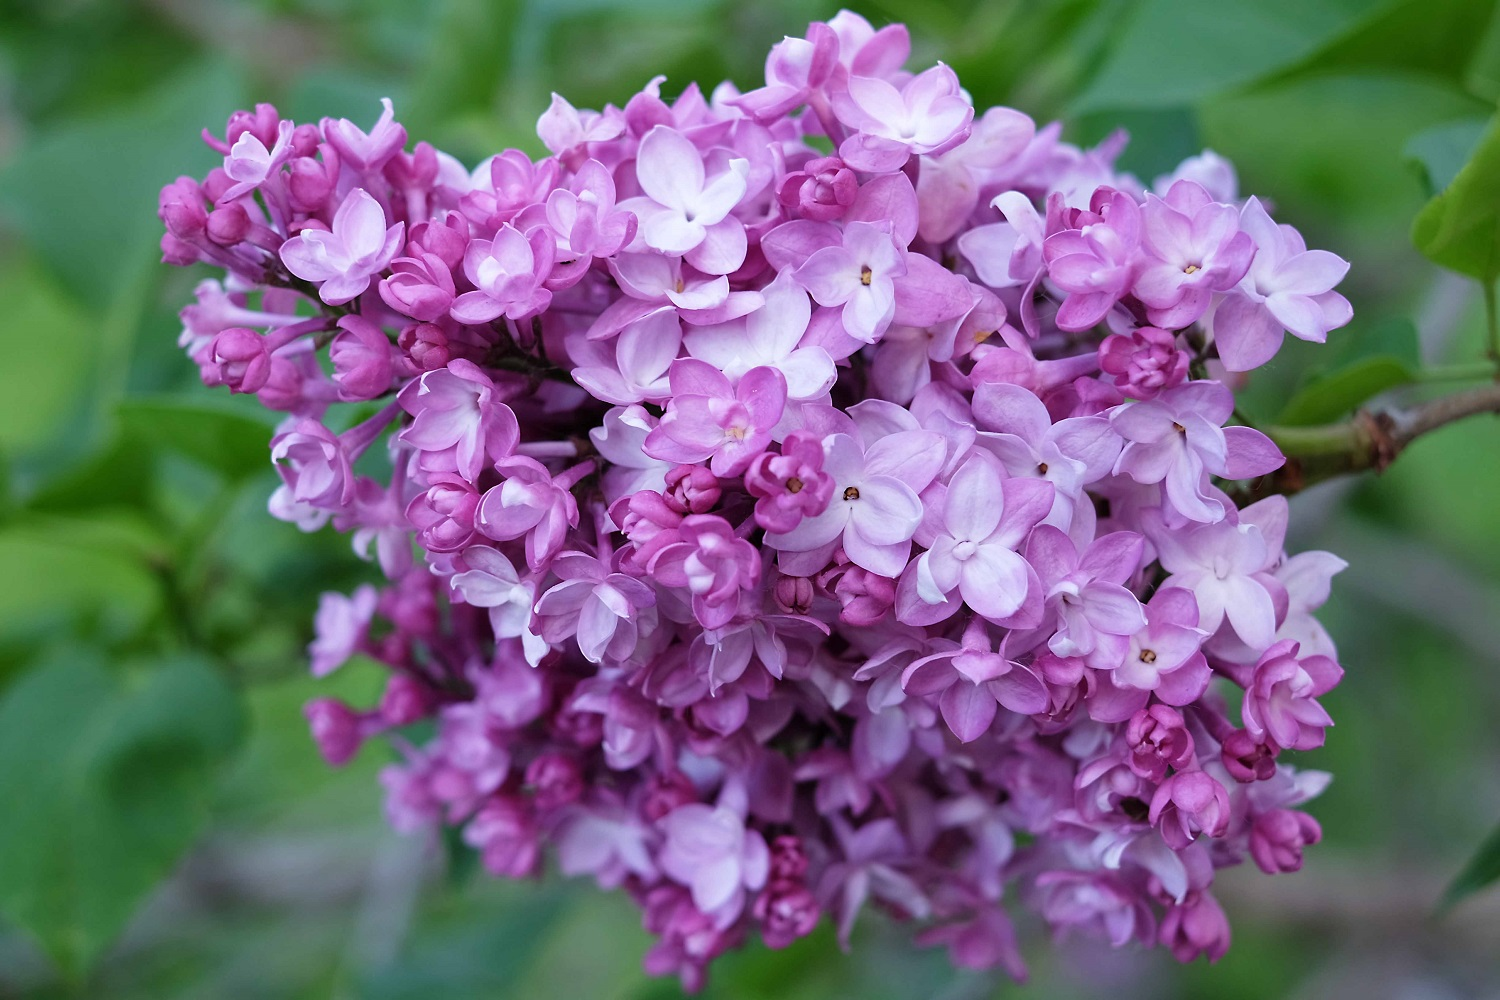 Viscountess Willingdon lilac at Central Experimental Farm